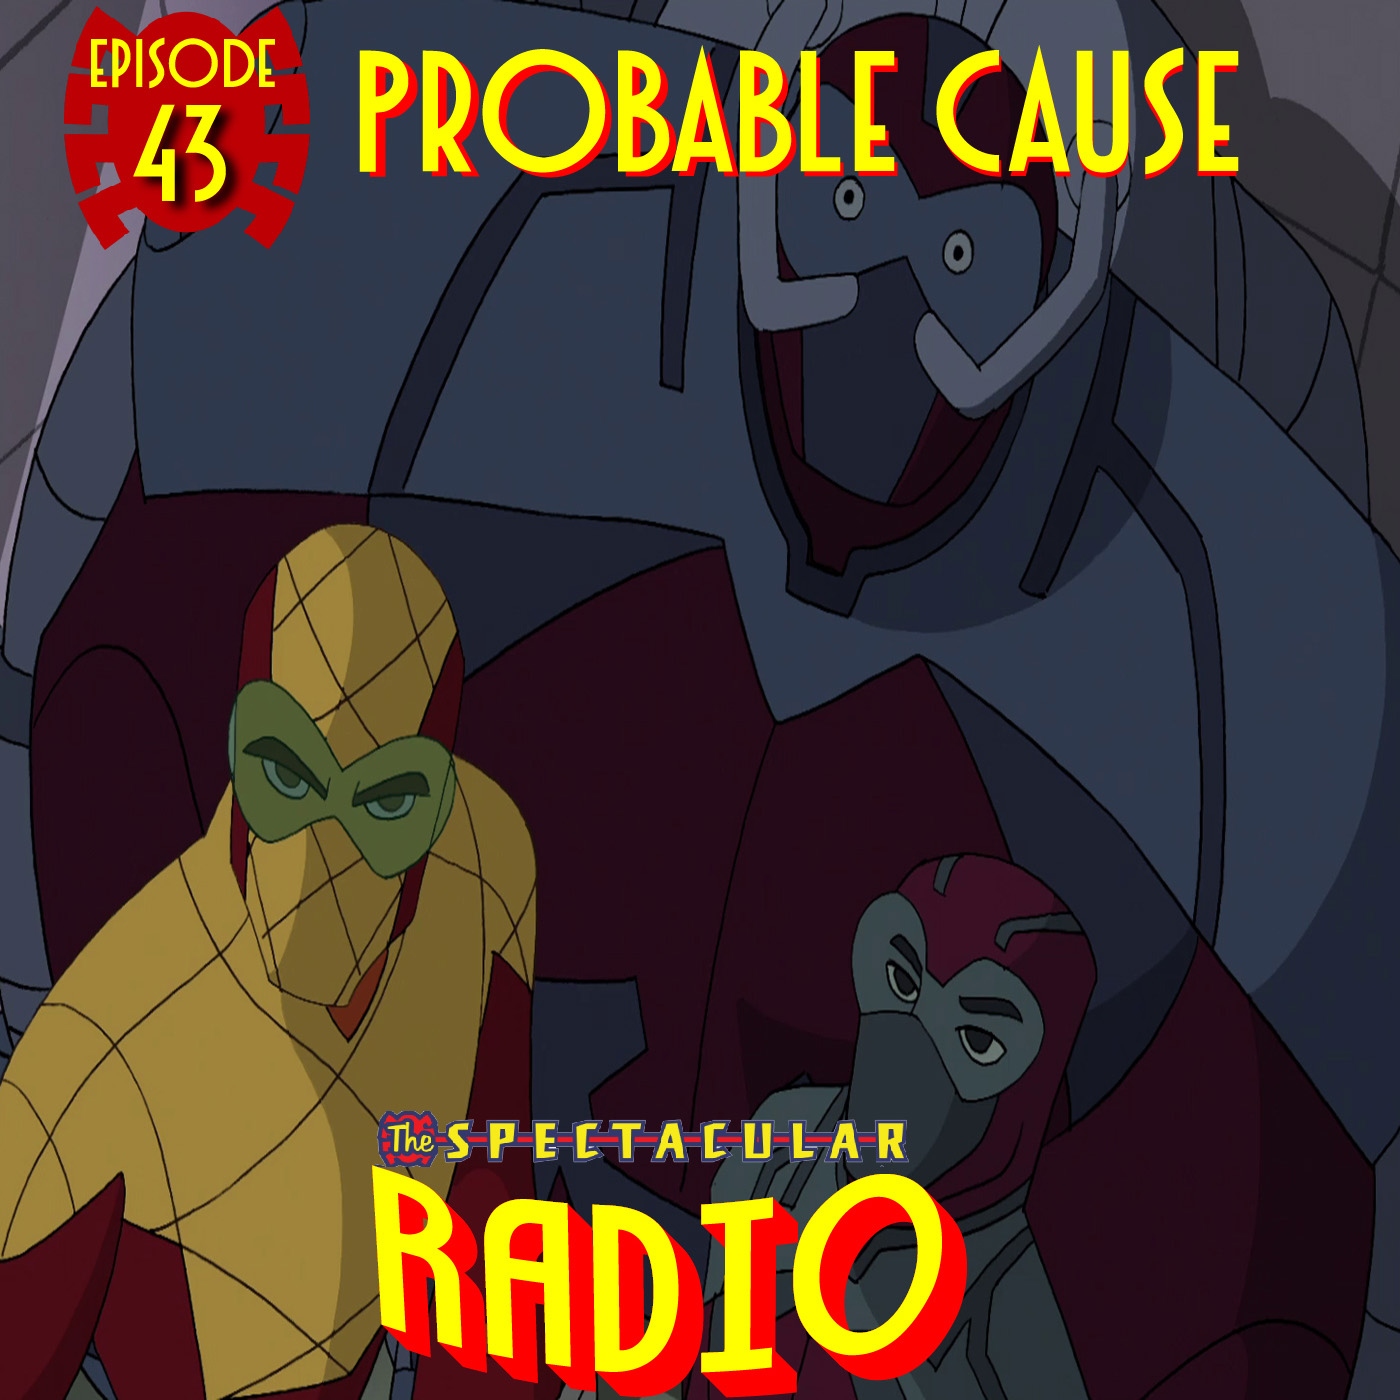 """Spectacular Radio Episode 43: """"Probable Cause"""" With Greg Weisman"""